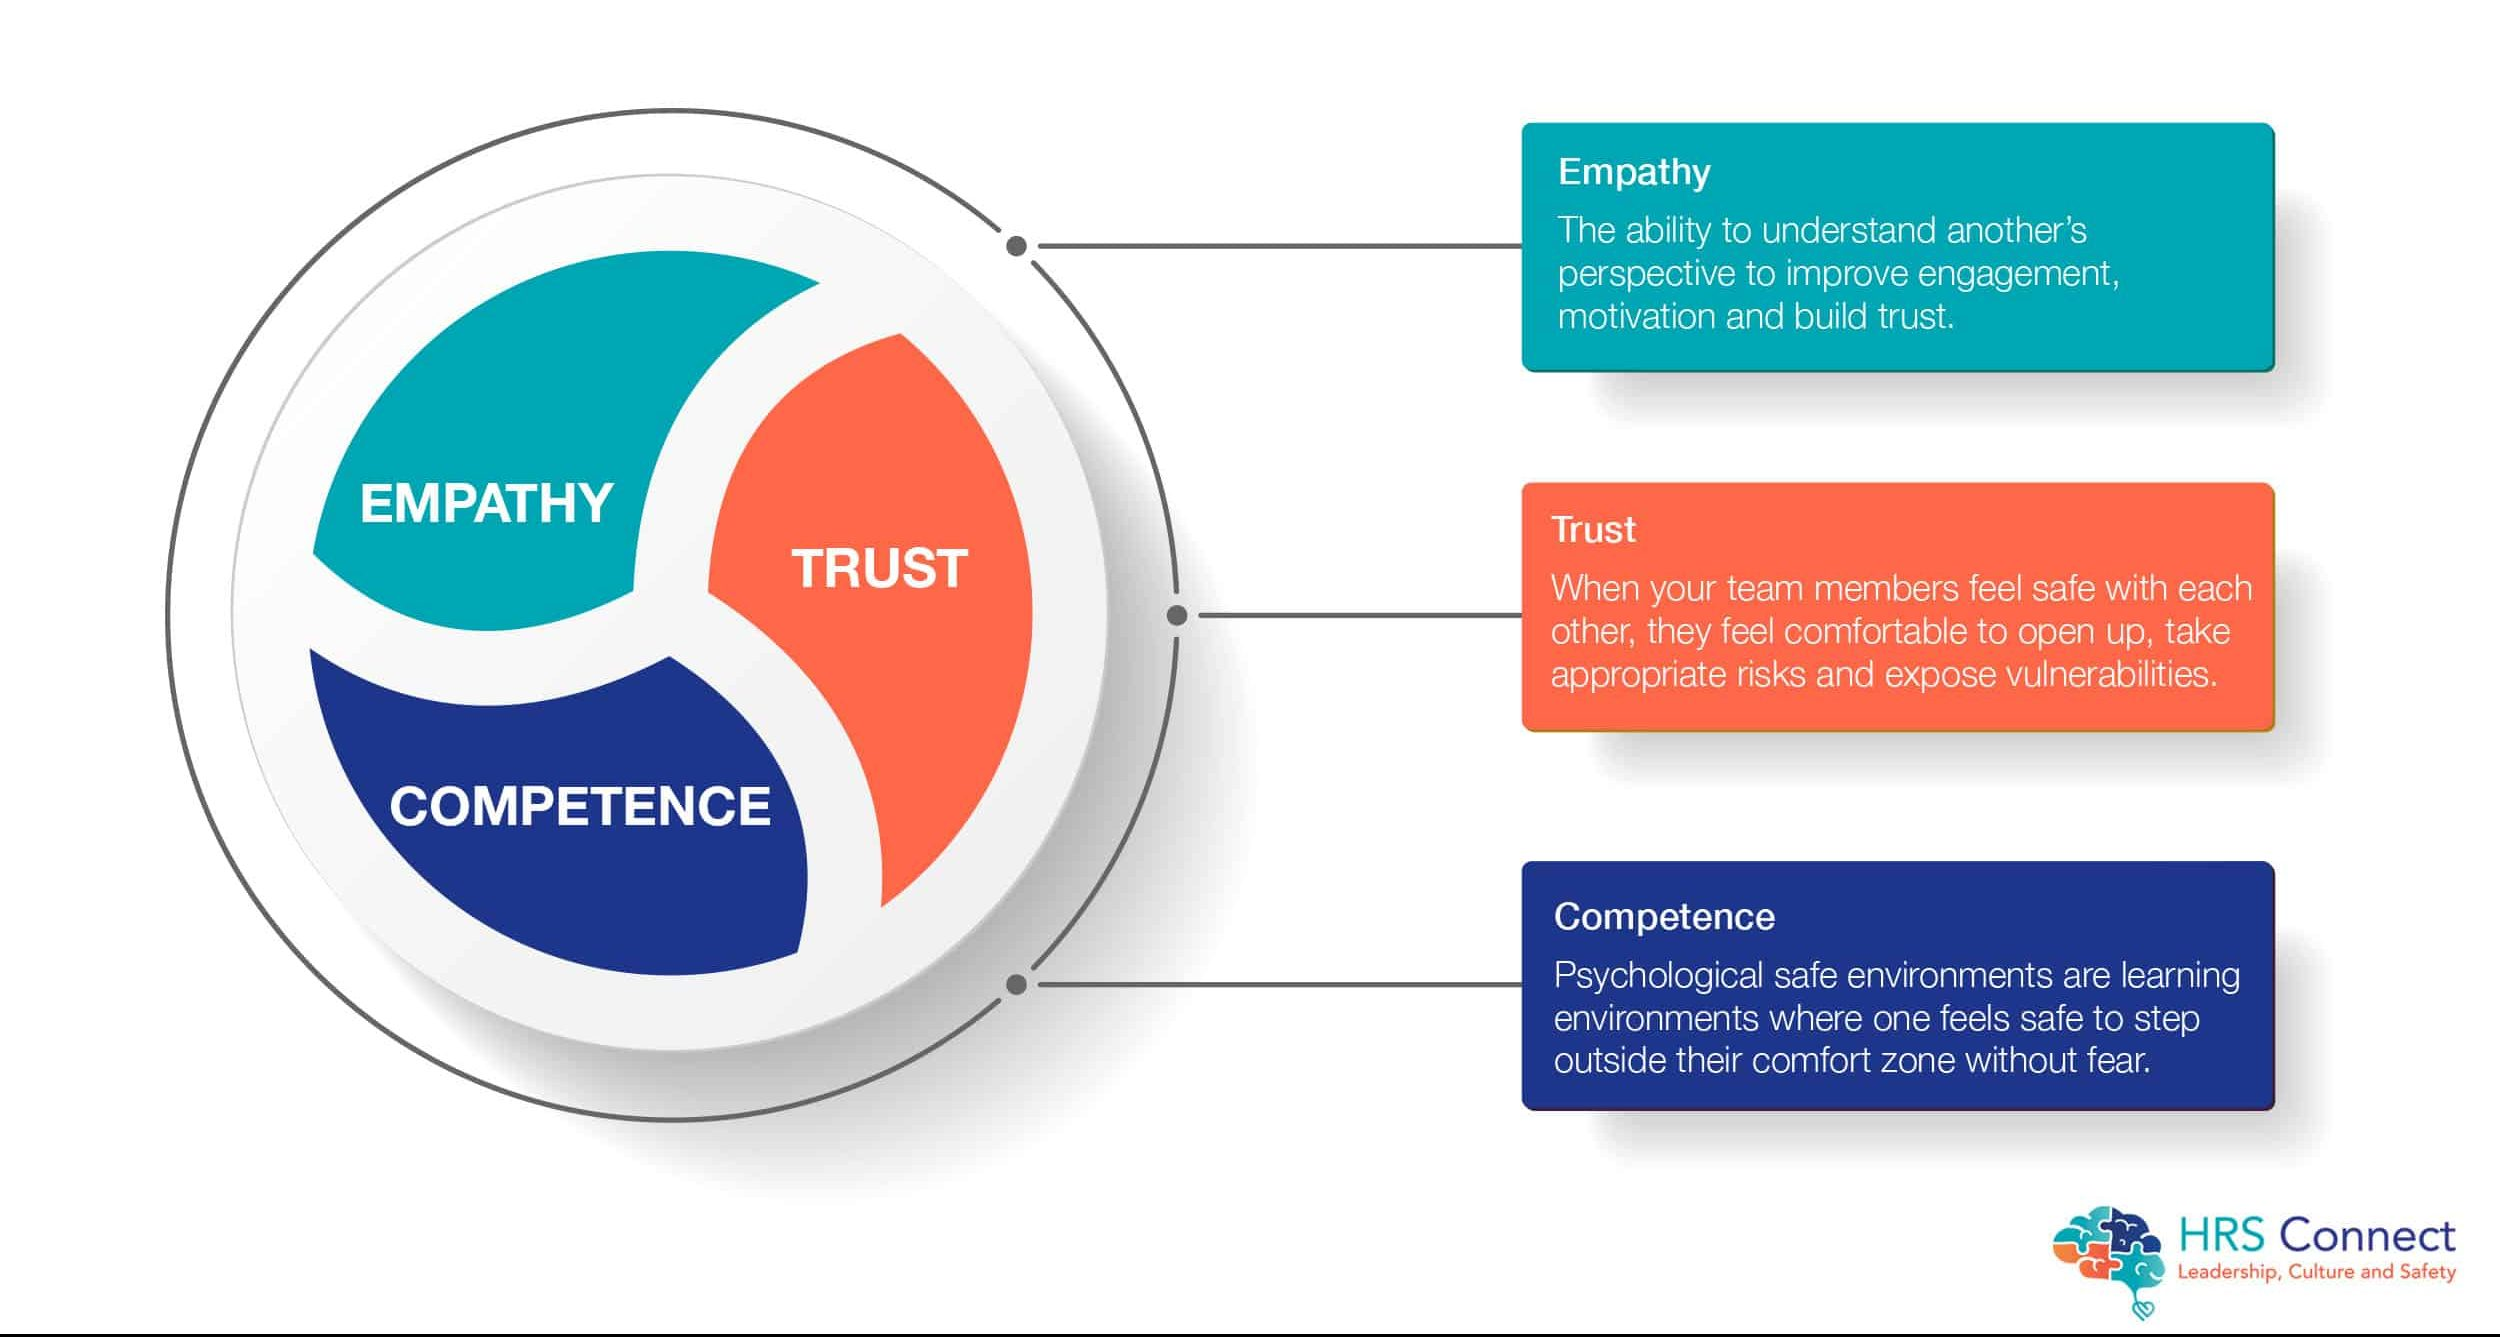 Themes of Psychological Team Safety: Trust, Empathy and Competence